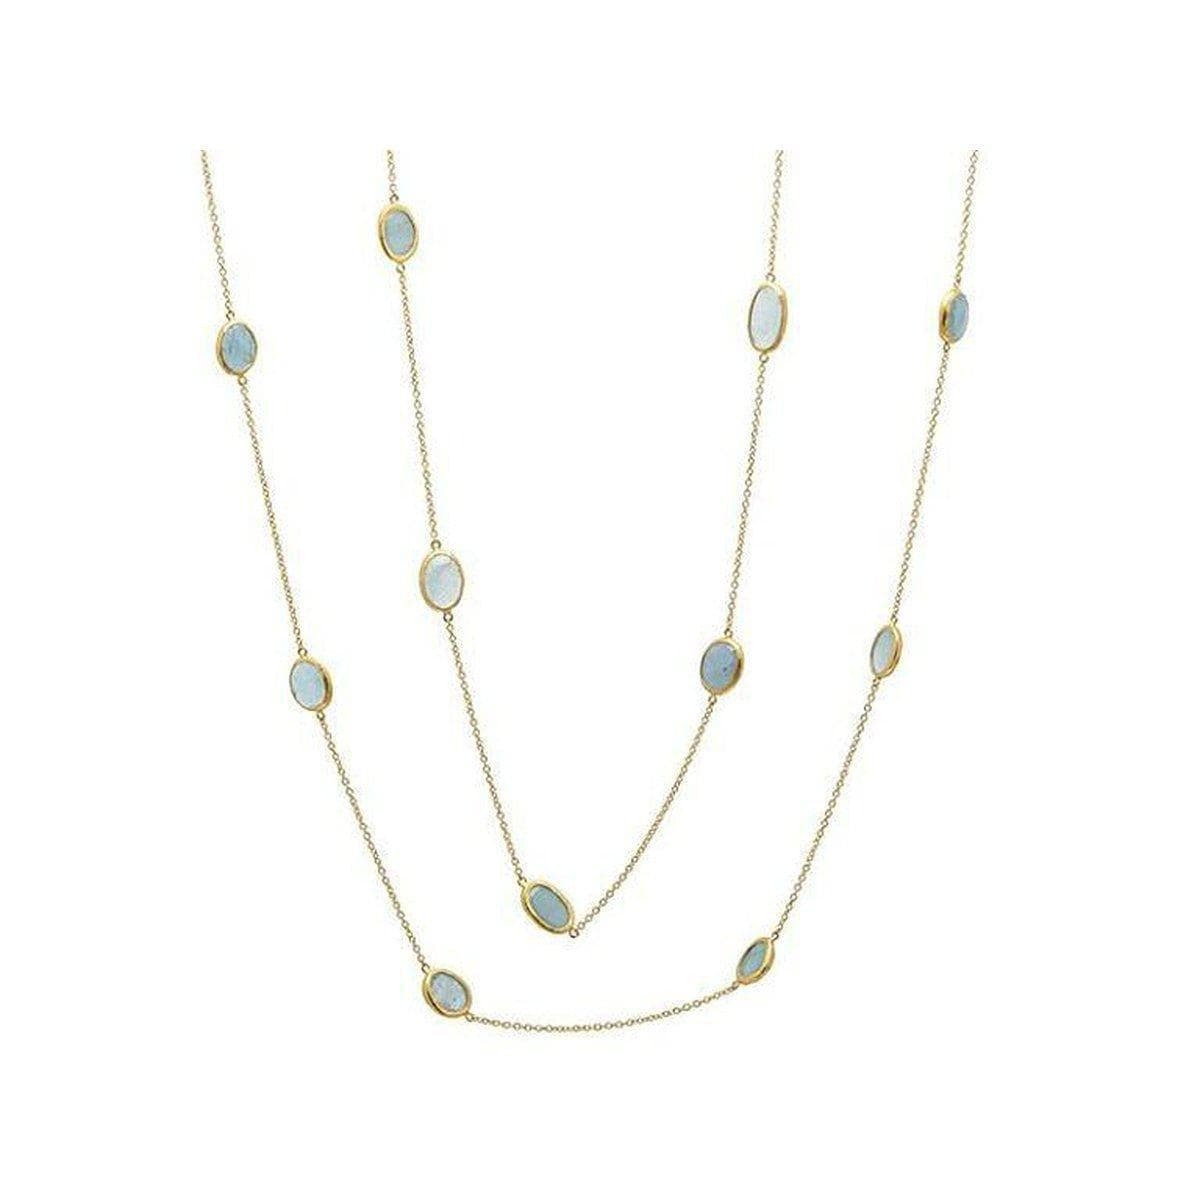 Elements 24K Gold Aquamarine Necklace - N-U23701-AQ